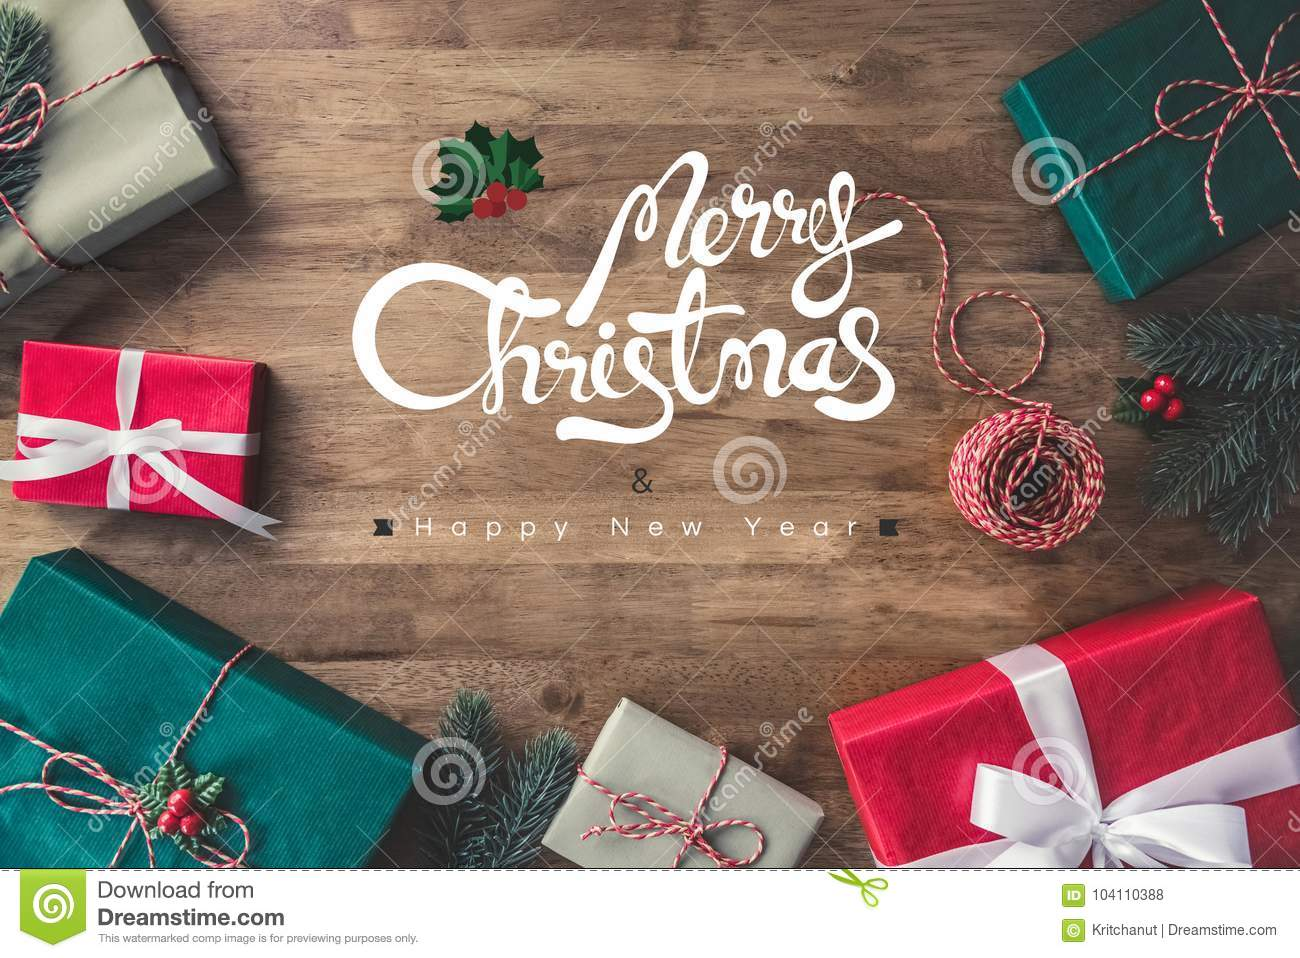 Merry christmas and happy new year greeting text on a wooden table merry christmas and happy new year greeting text on a wooden table m4hsunfo